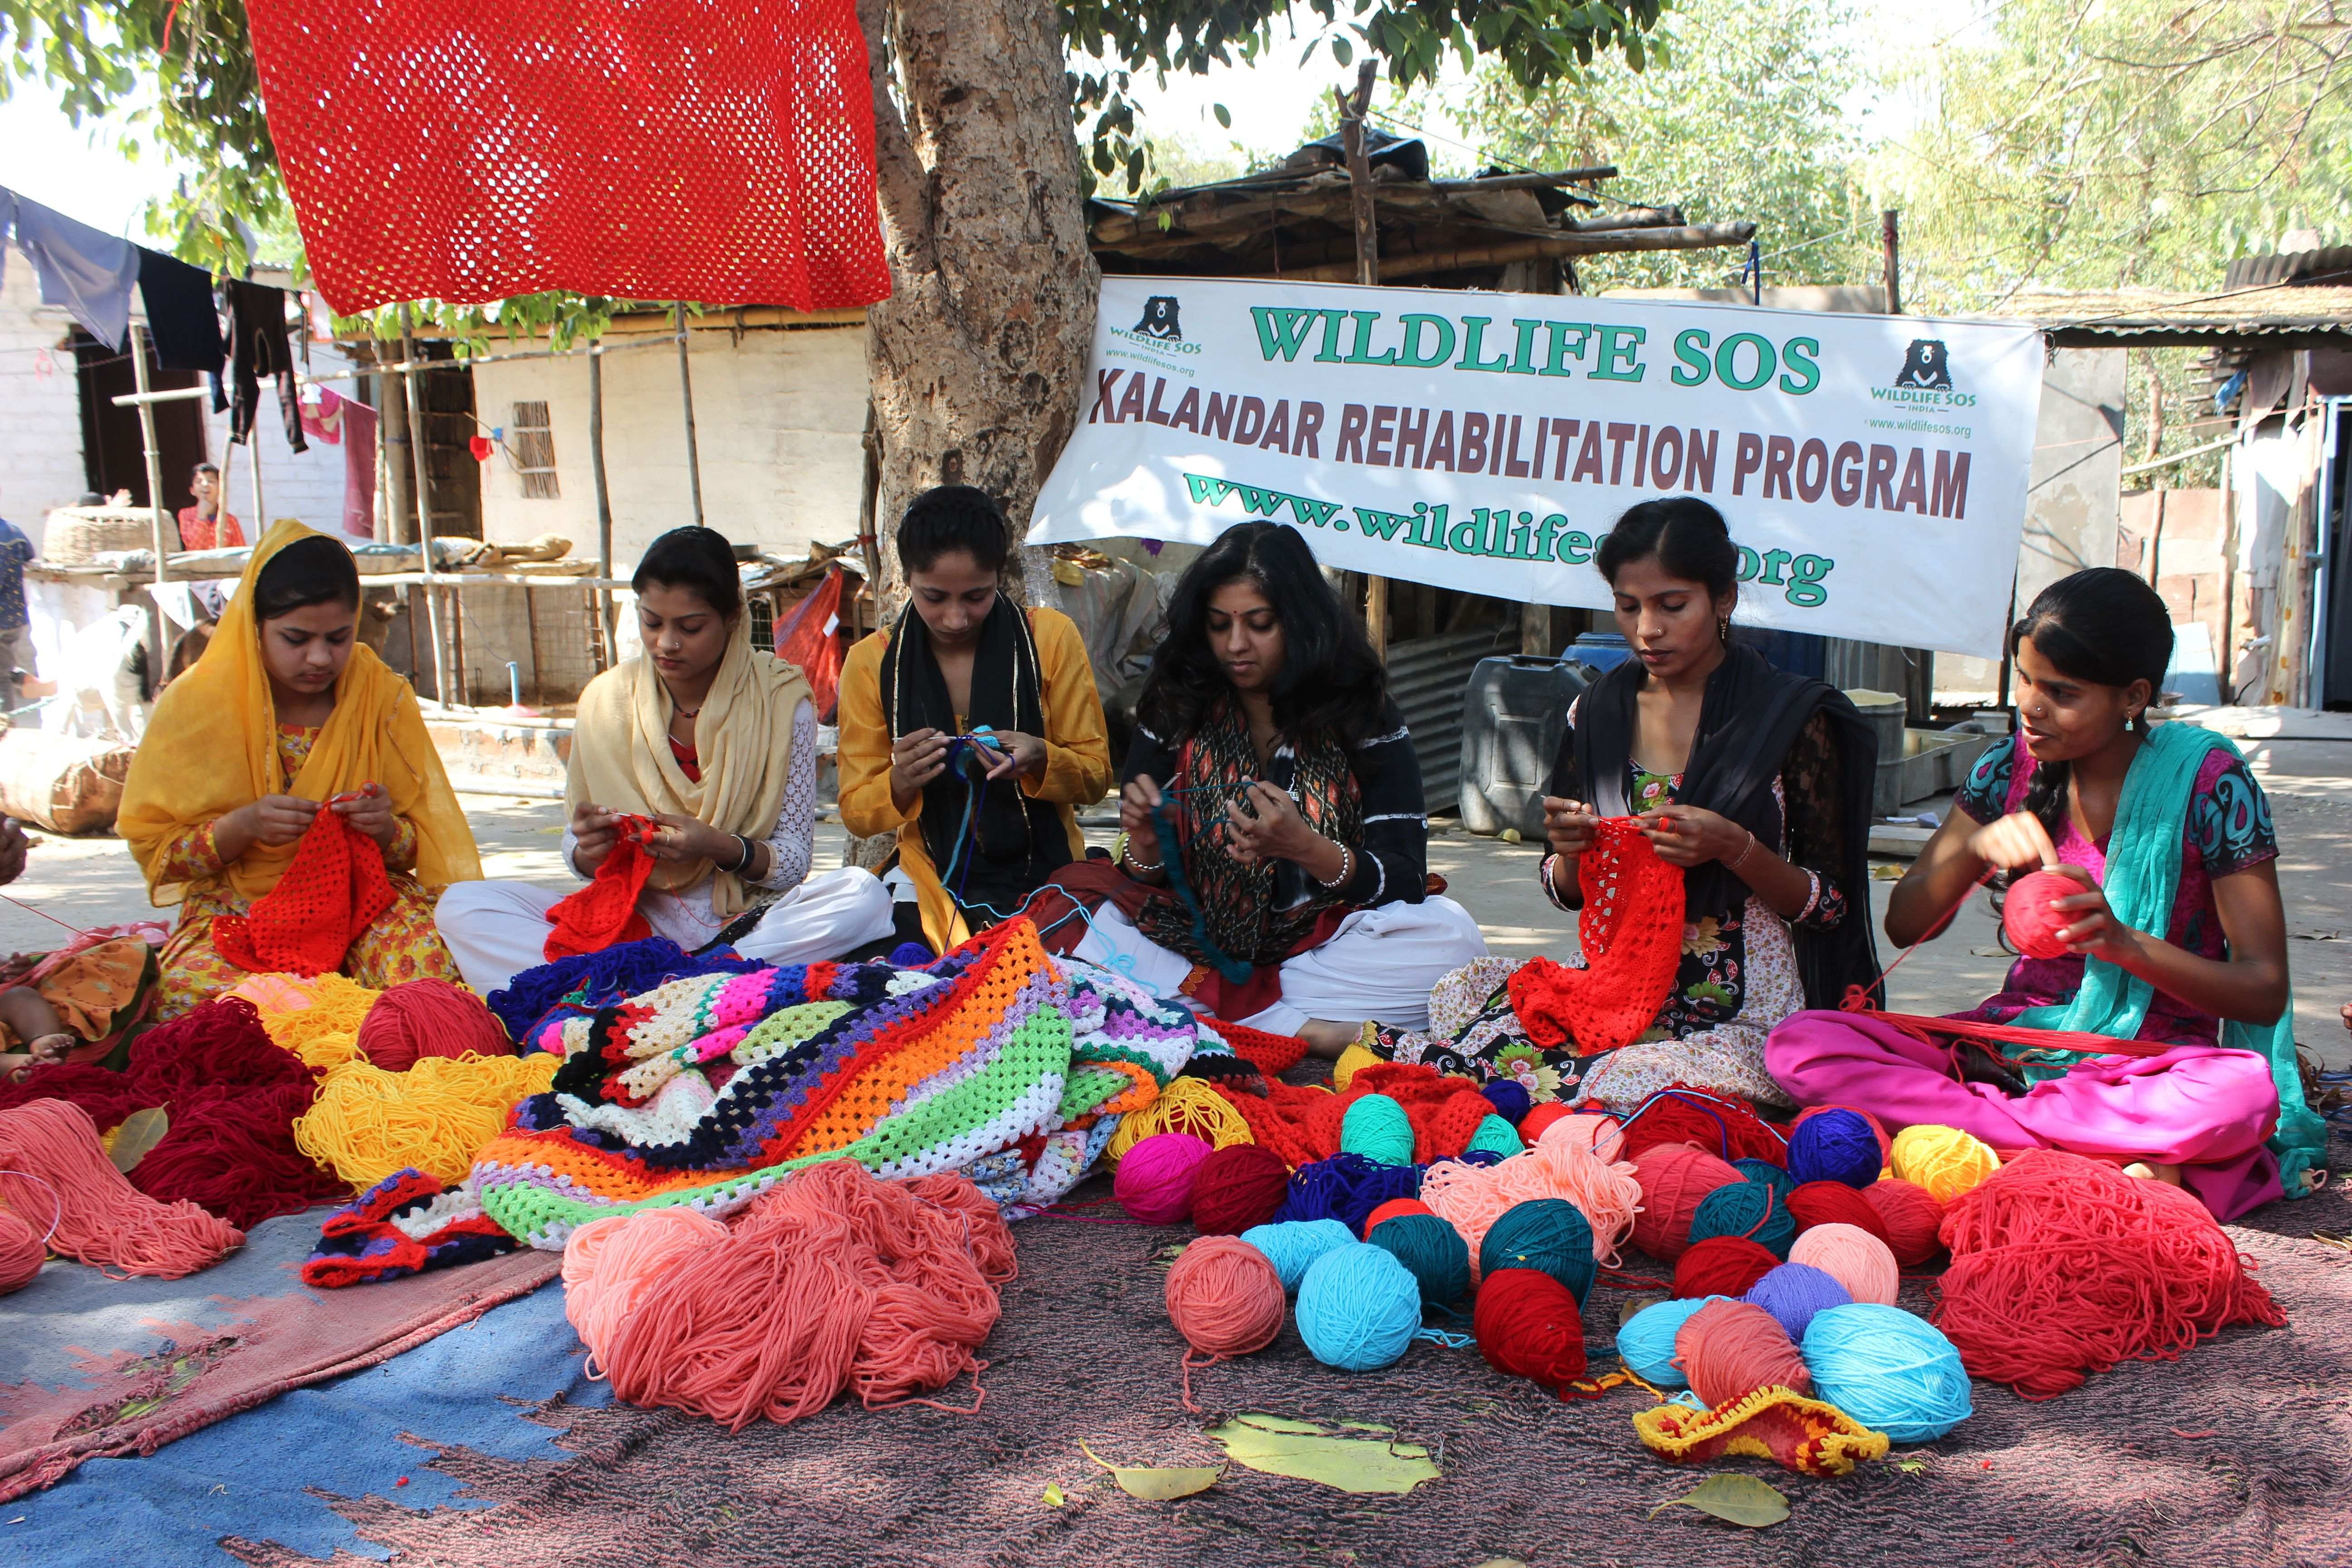 Women of the Kalandar community knitting the jumpers for the elephants